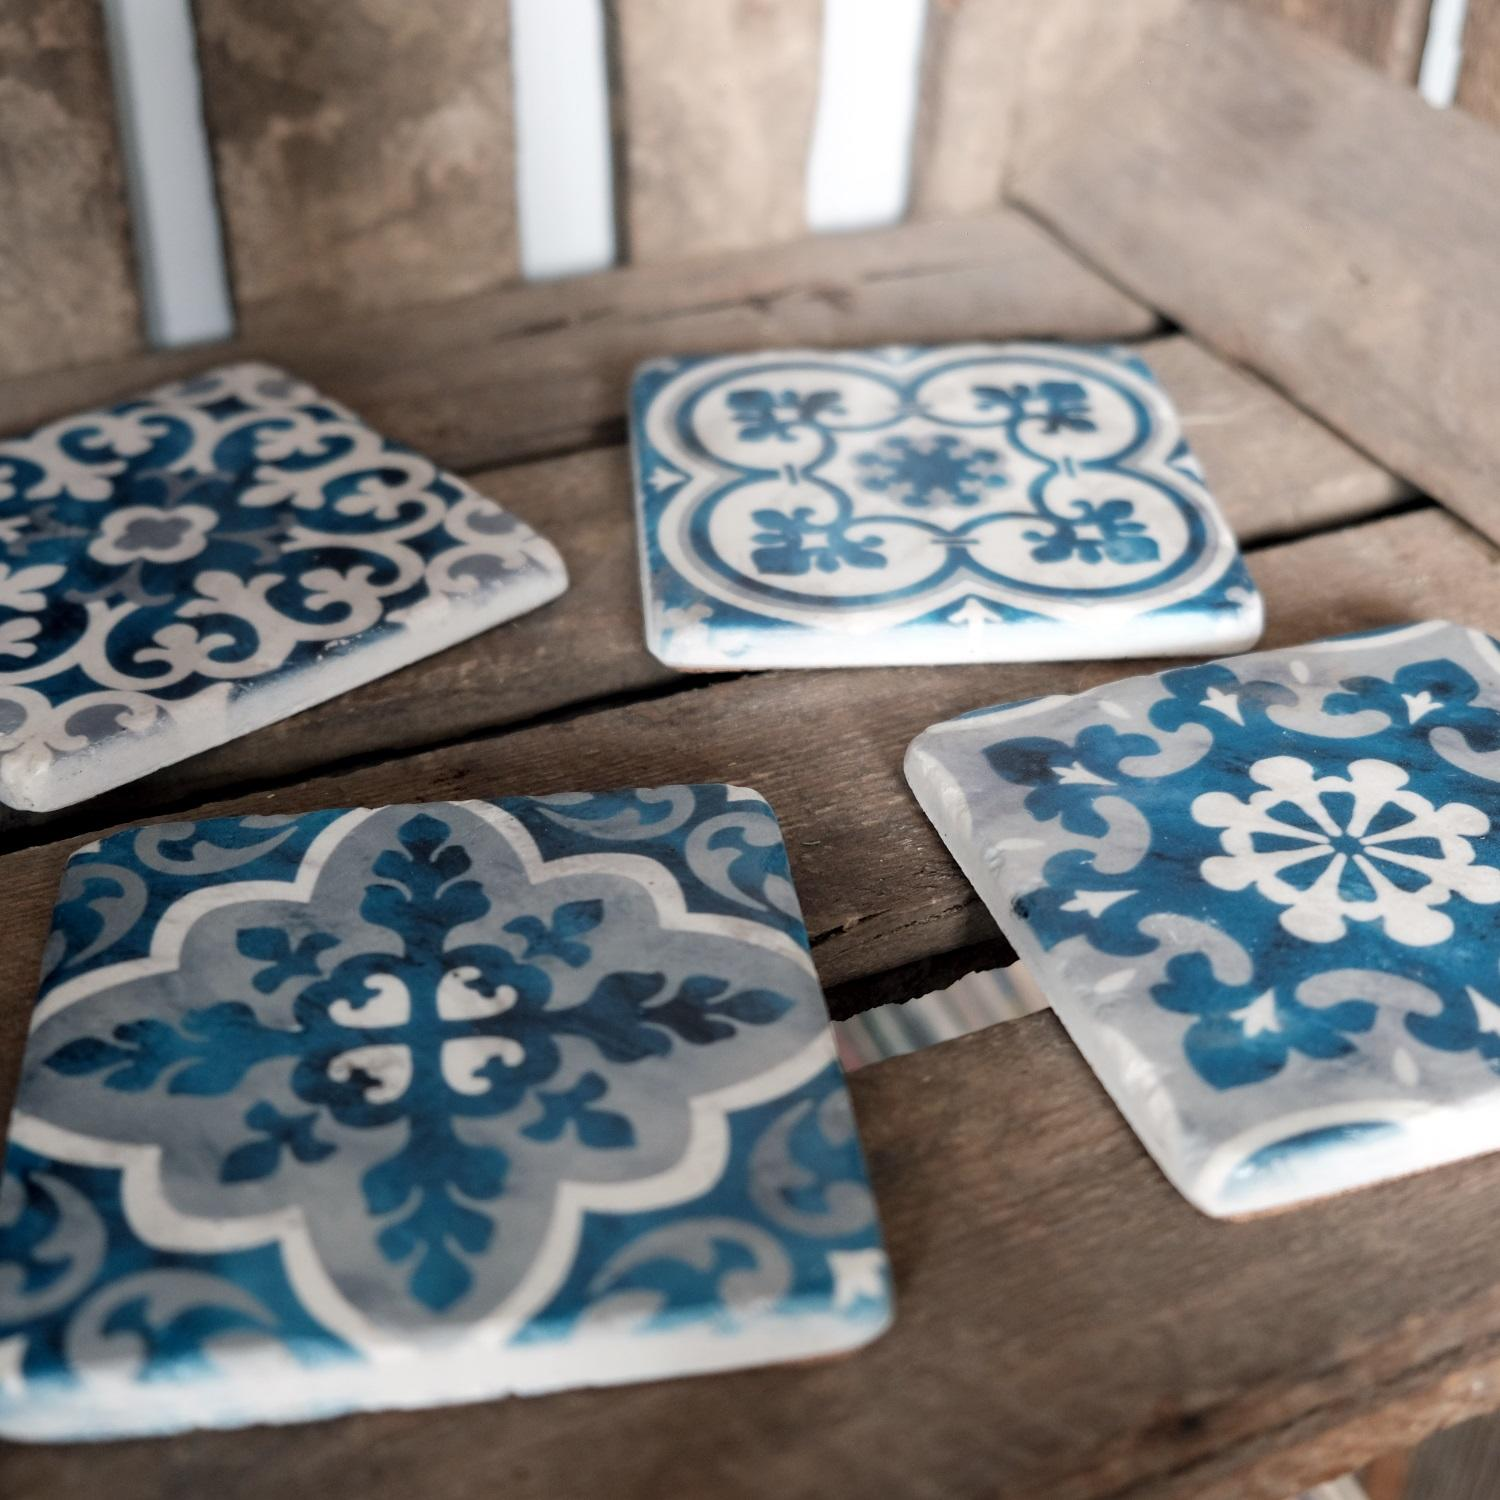 Mediterranean Mosaic Coasters at Albert & Moo